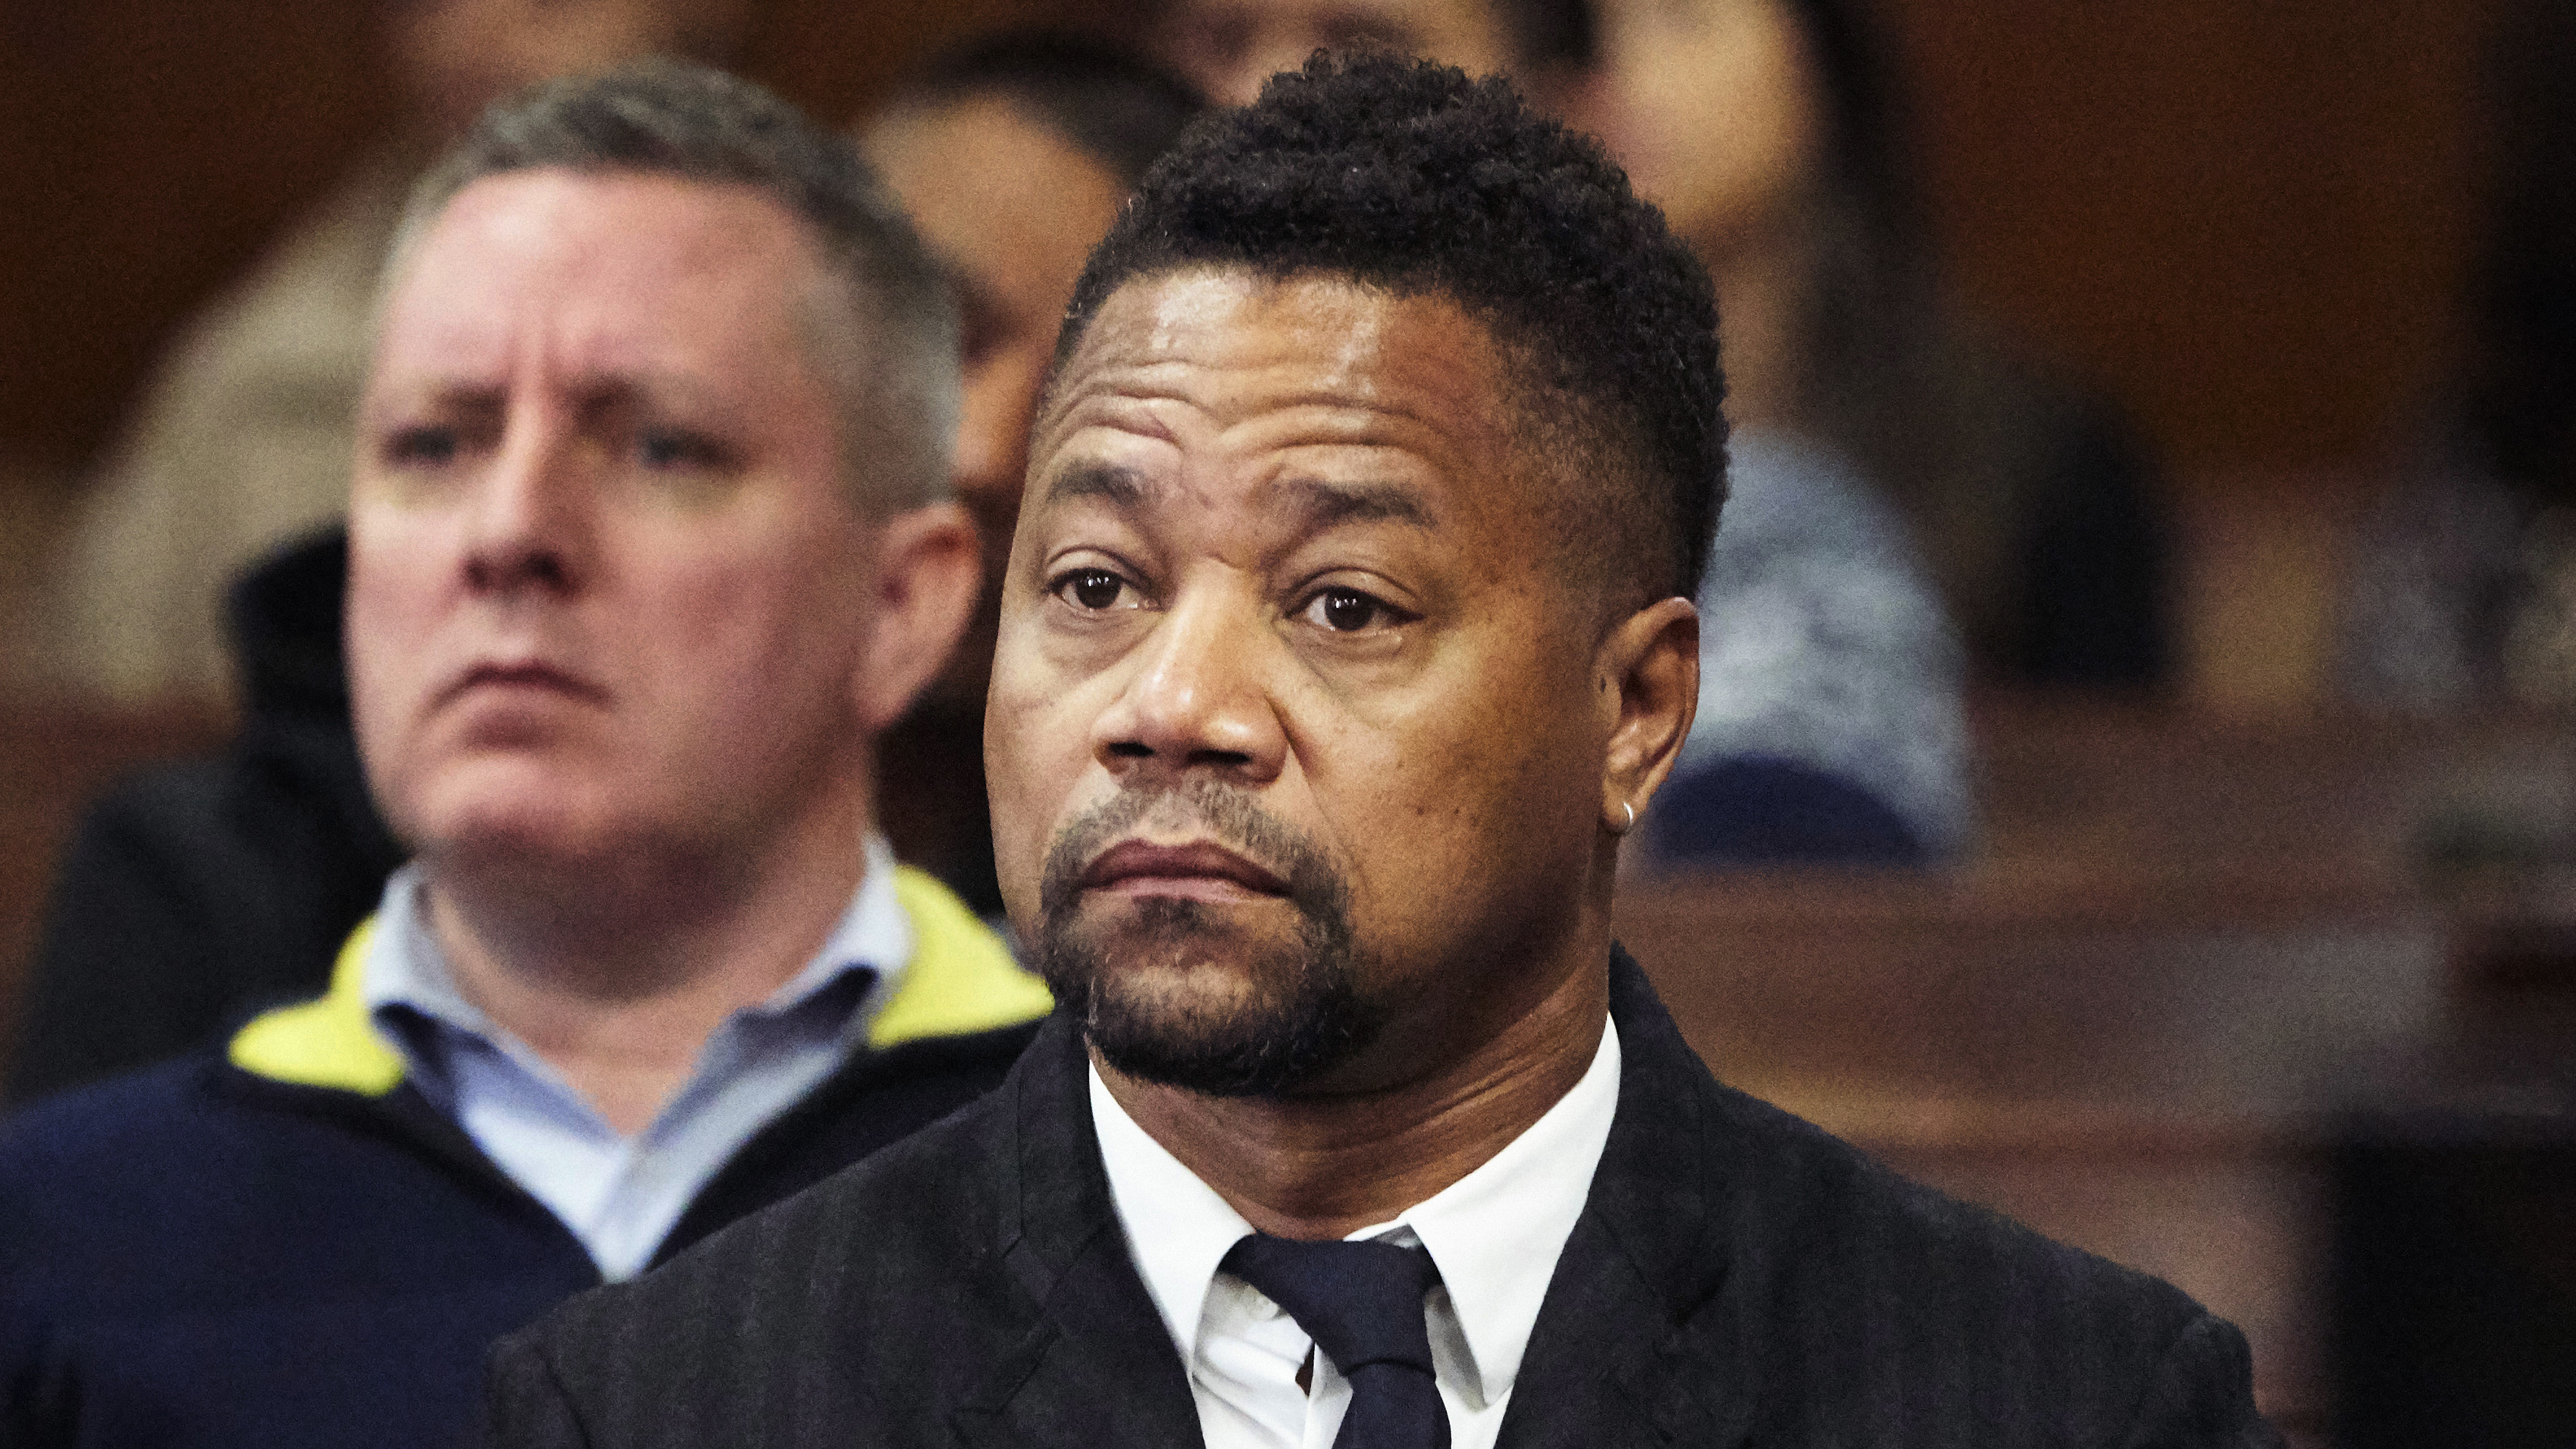 Westlake Legal Group cuba-1 Cuba Gooding Jr. sued by bartender over alleged groping: report Nate Day fox-news/entertainment/celebrity-news fox-news/entertainment fox news fnc/entertainment fnc article 46b00a11-5f30-5157-a718-69e55822468b